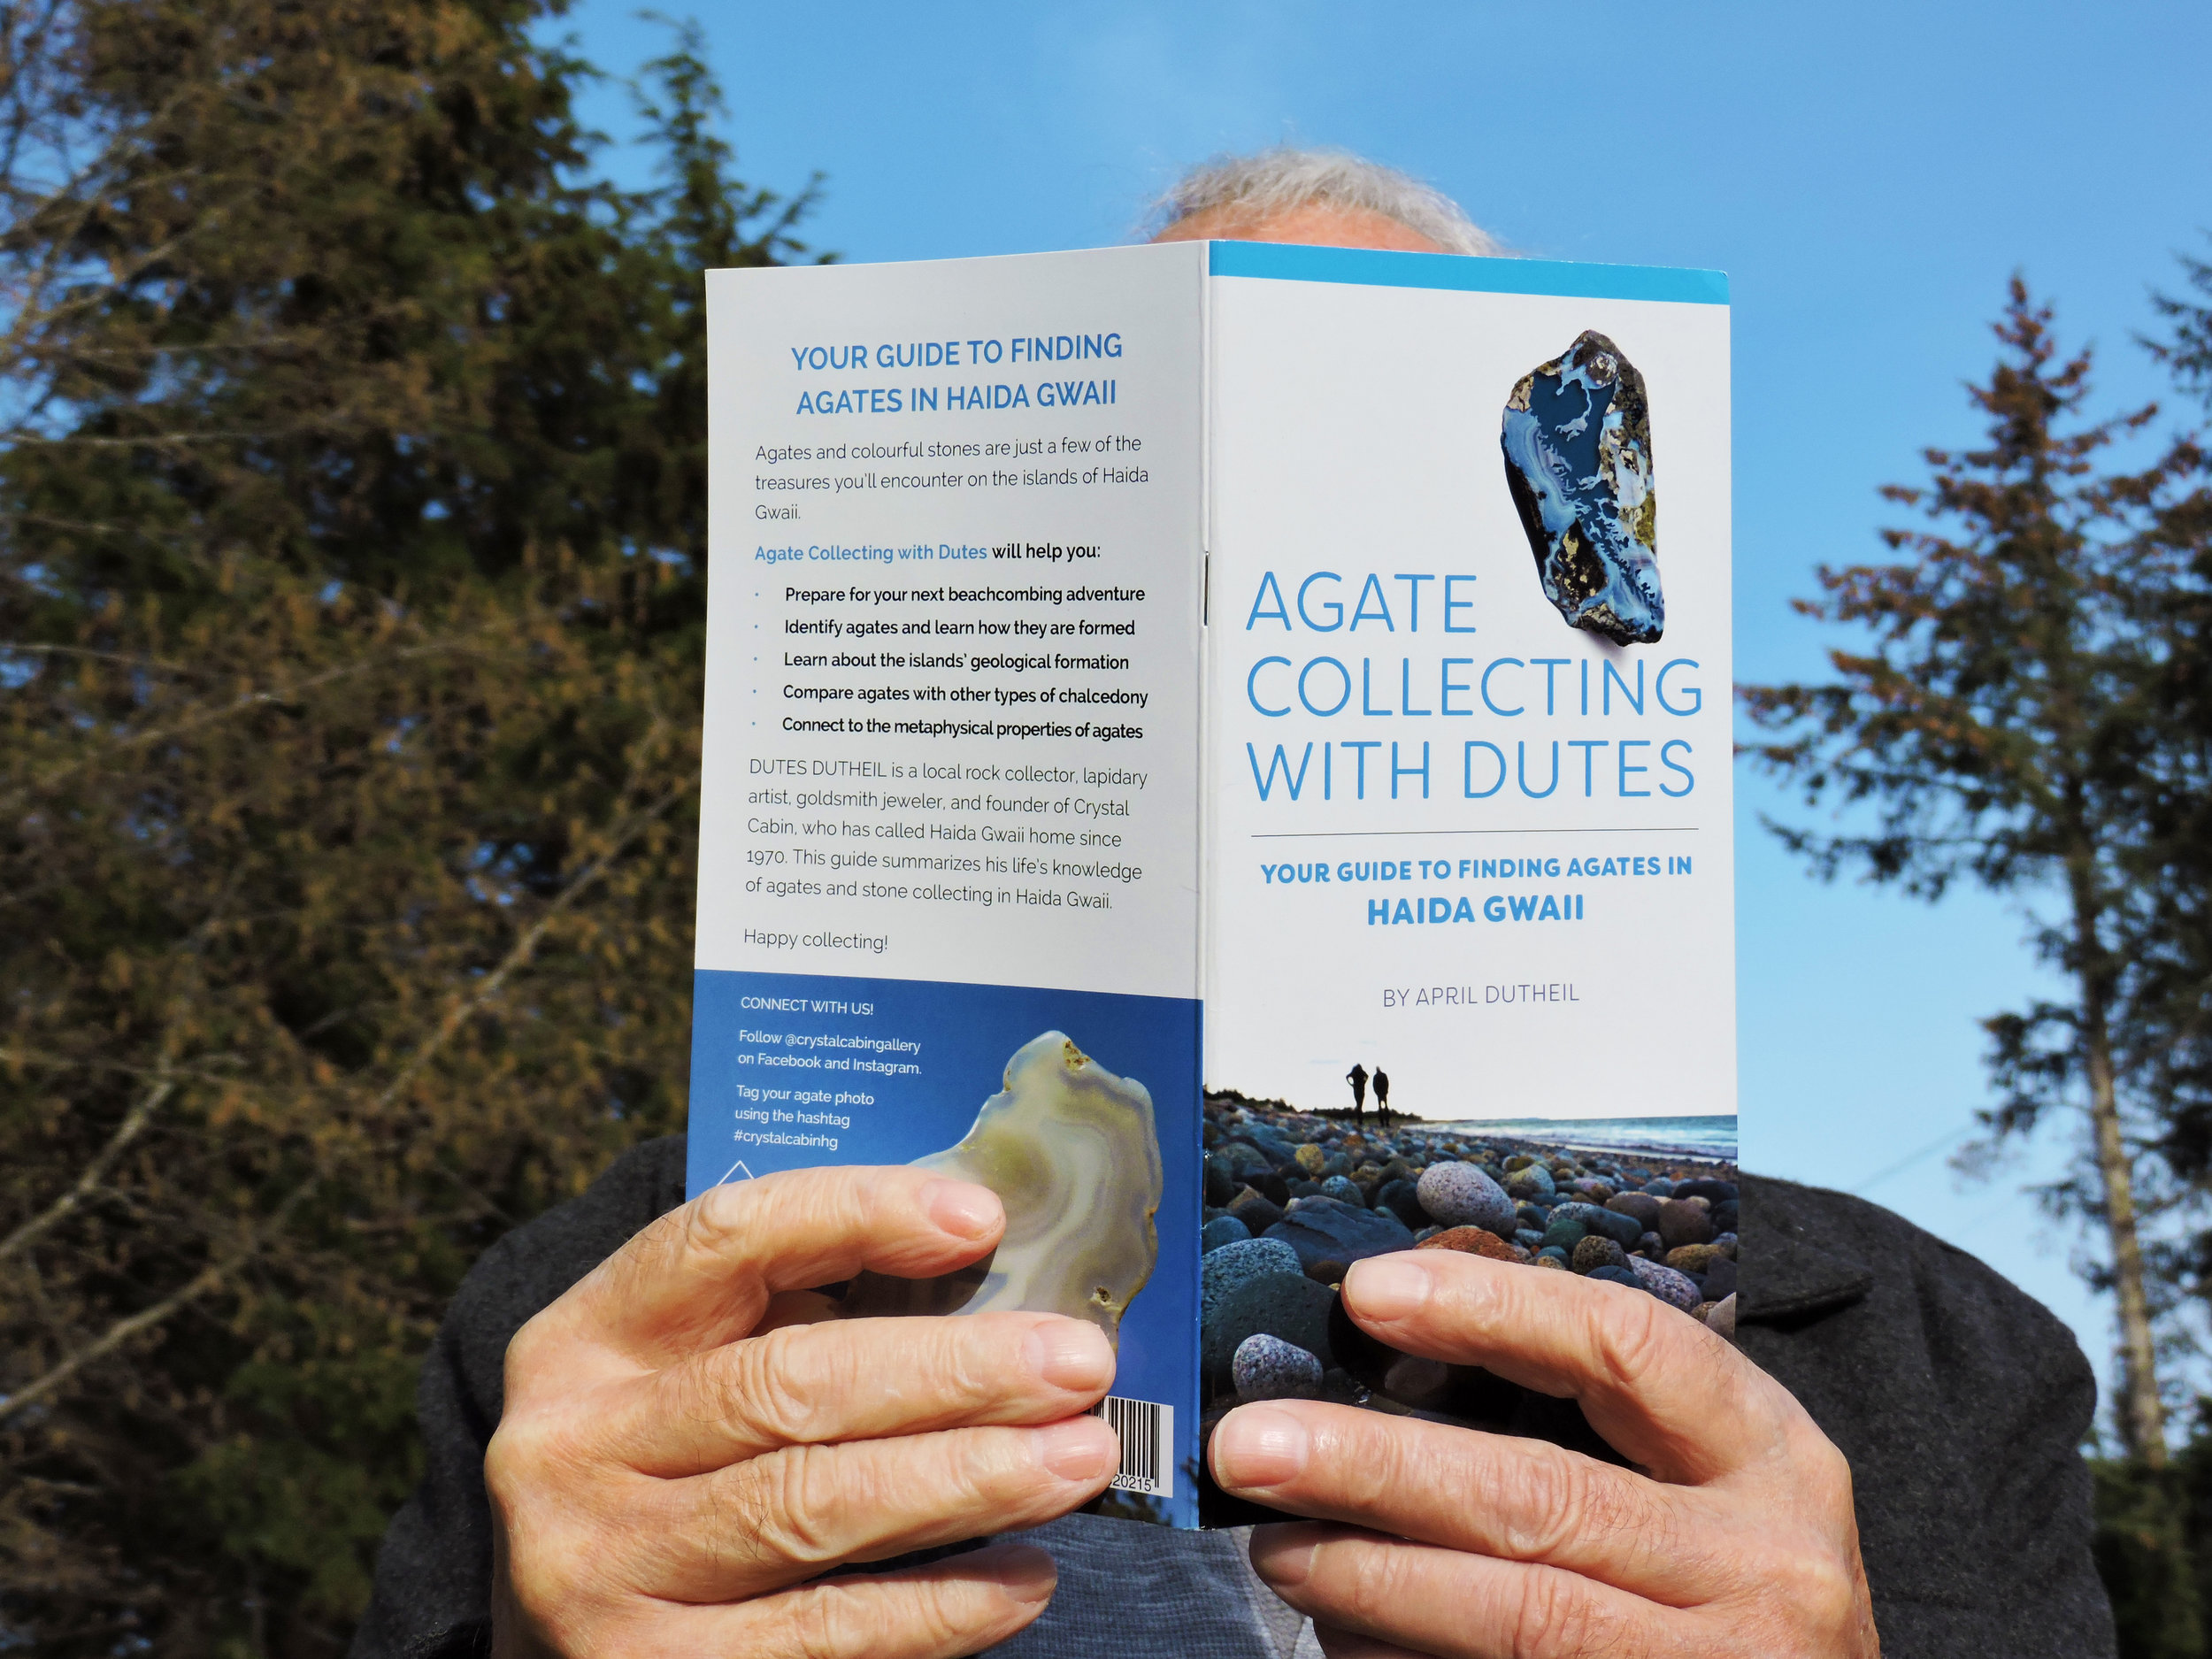 Agate Collecting with Dutes: Your Guide to Finding Agates in Haida Gwaii